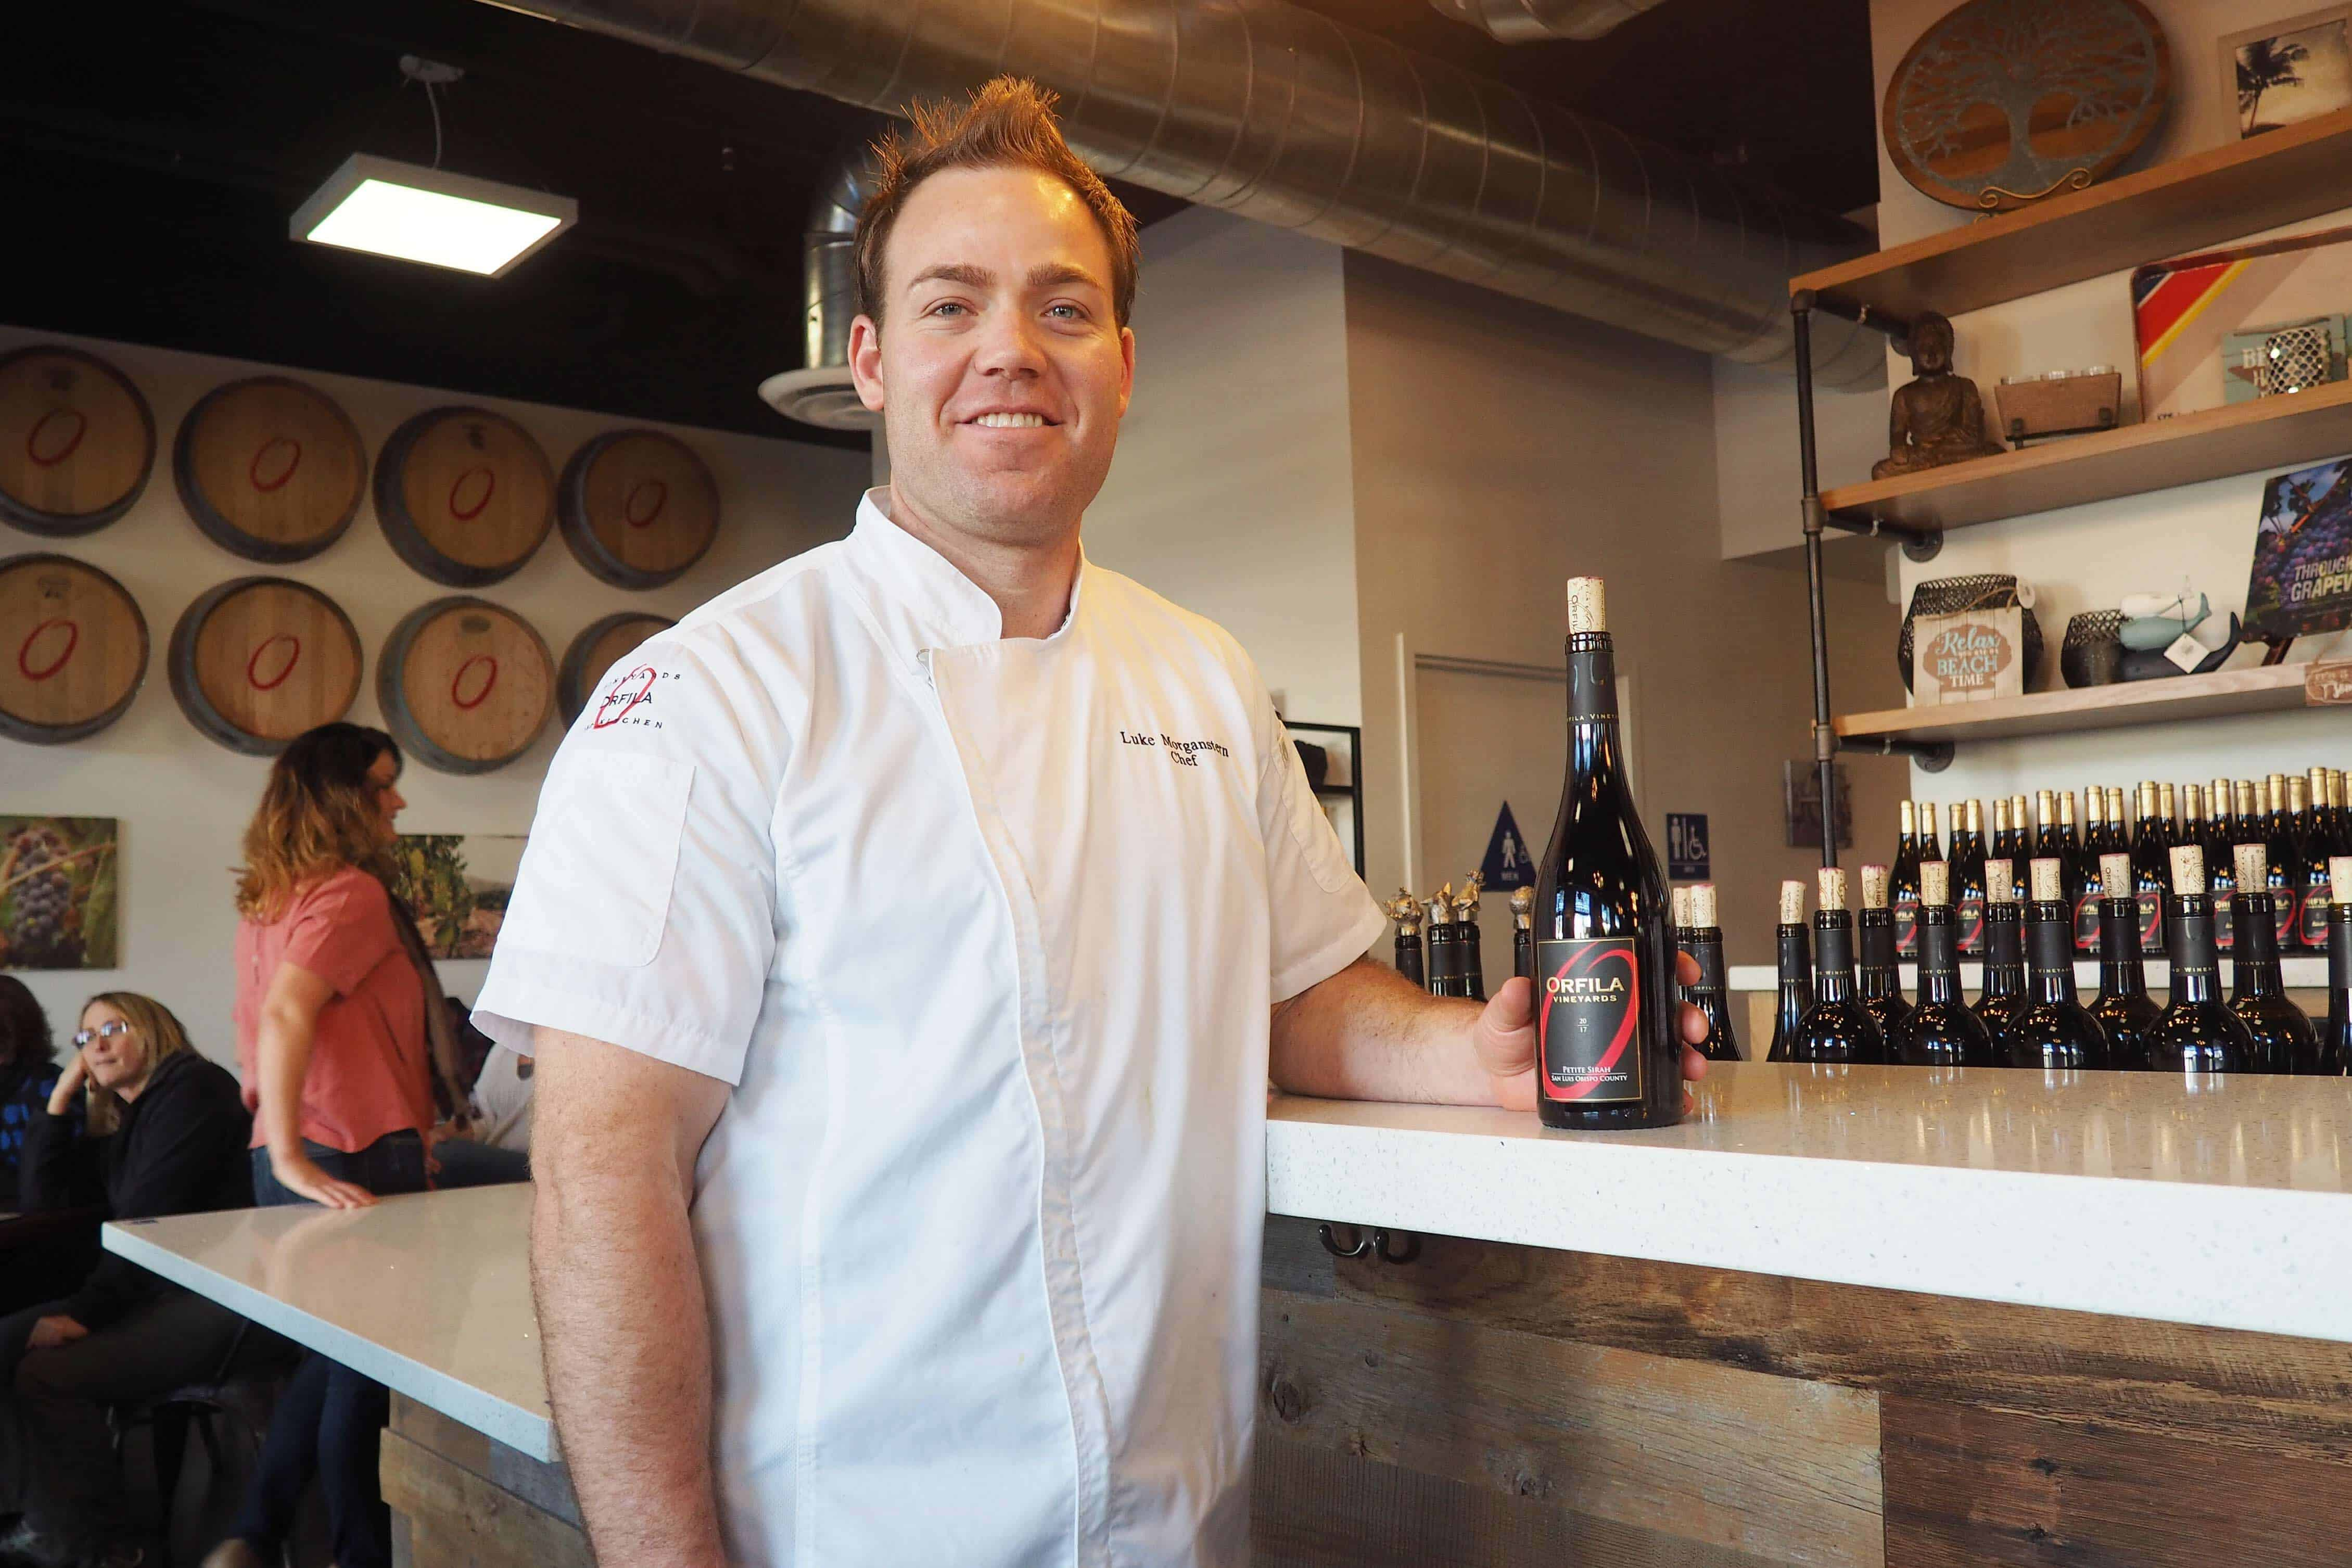 Orfila Vineyards & Winery Executive Chef Luke Morganstern